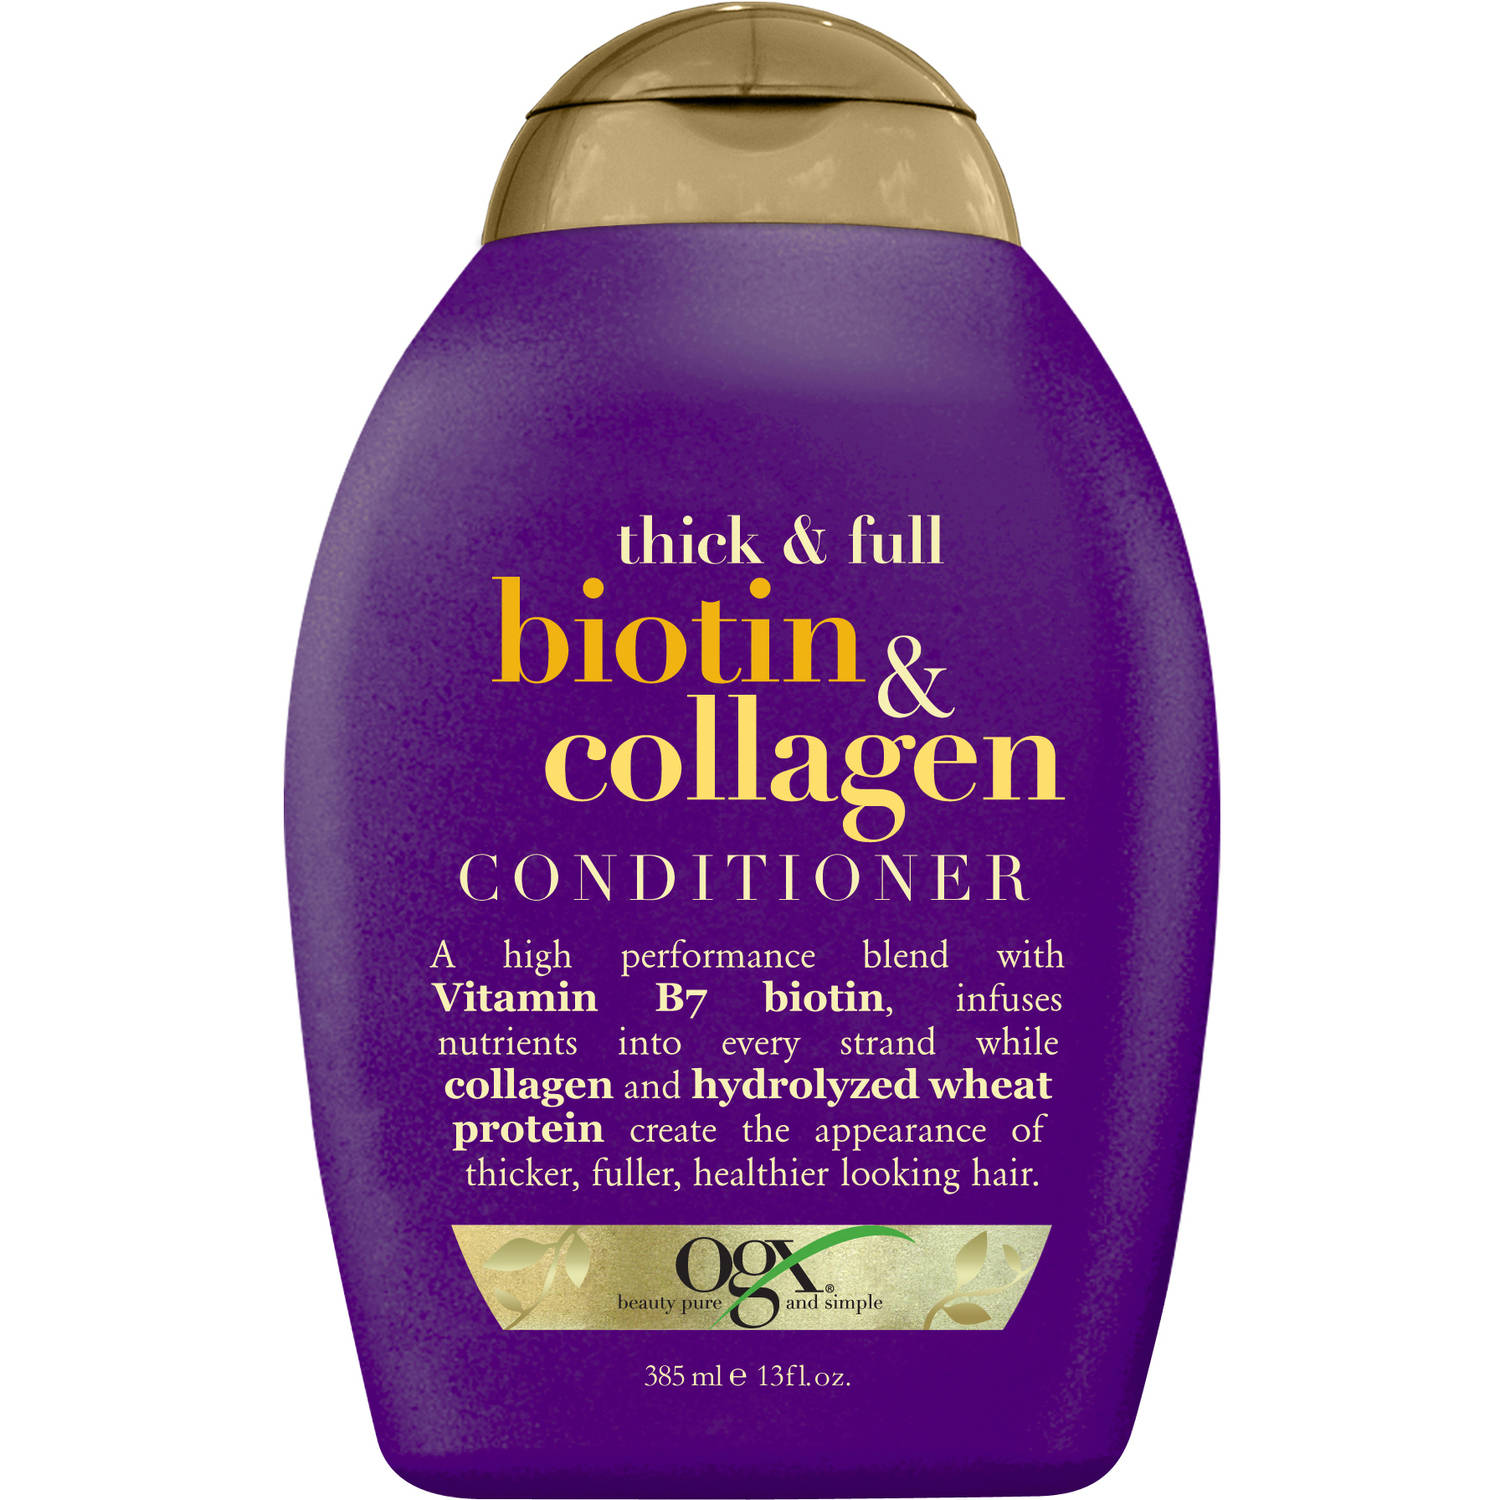 OGX Biotin & Collagen Conditioner, 13 fl oz